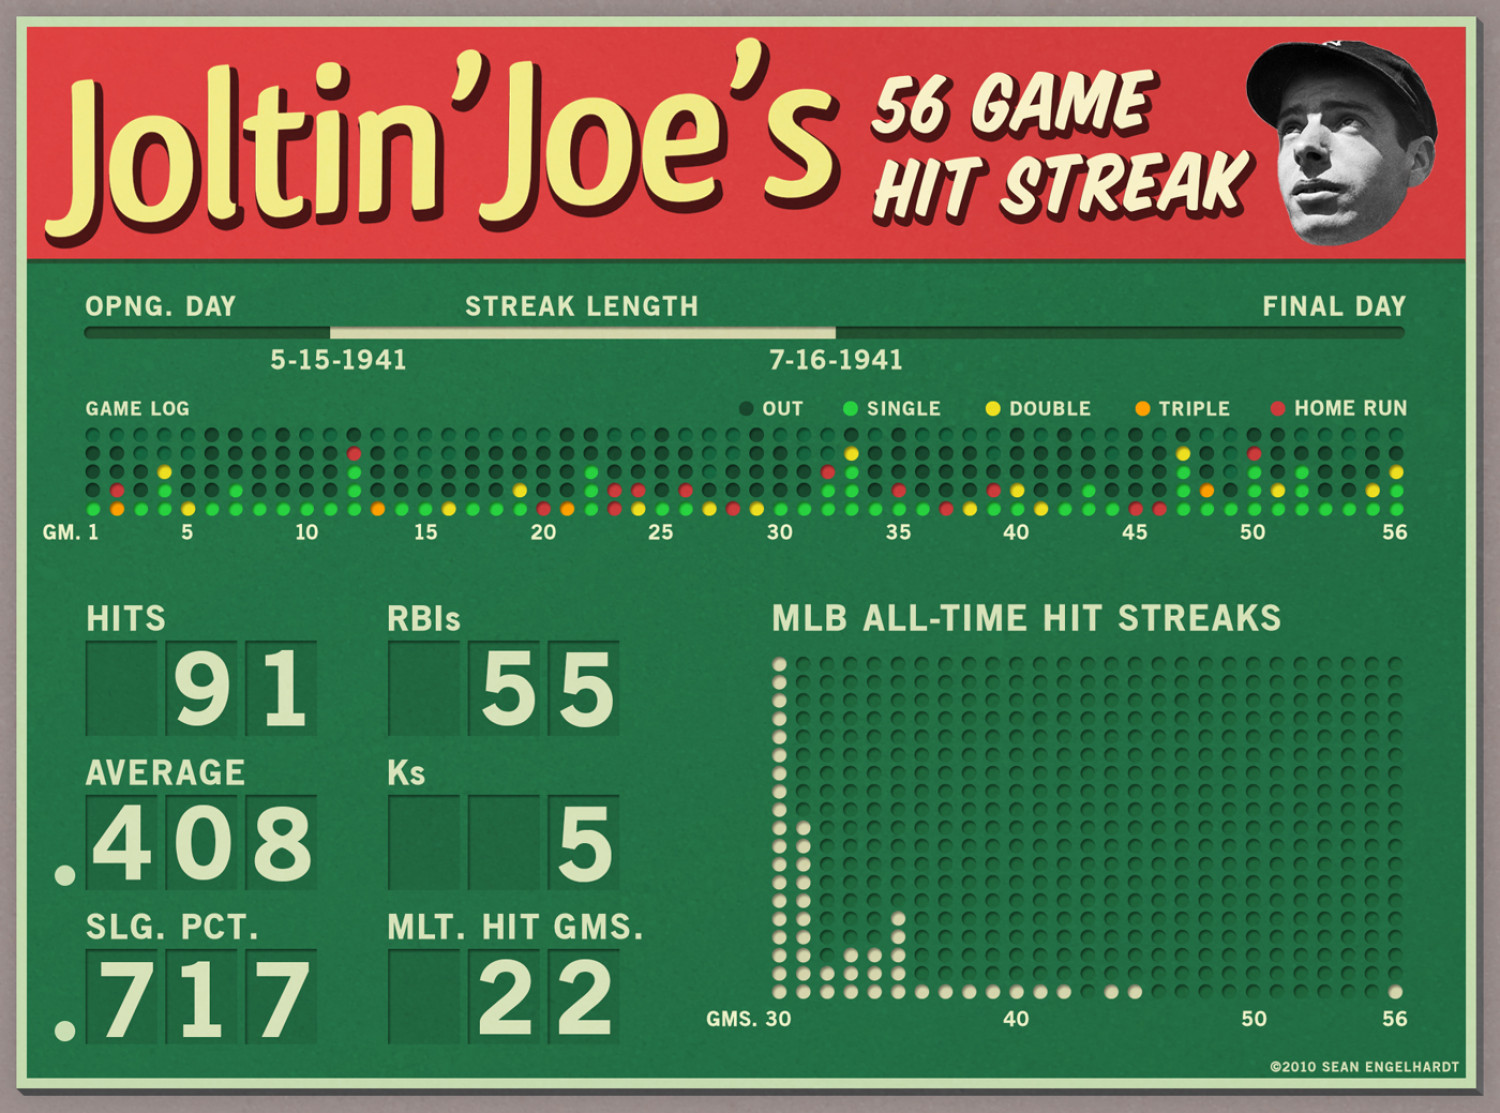 Joltin' Joe's 56 Game Hit Streak Infographic